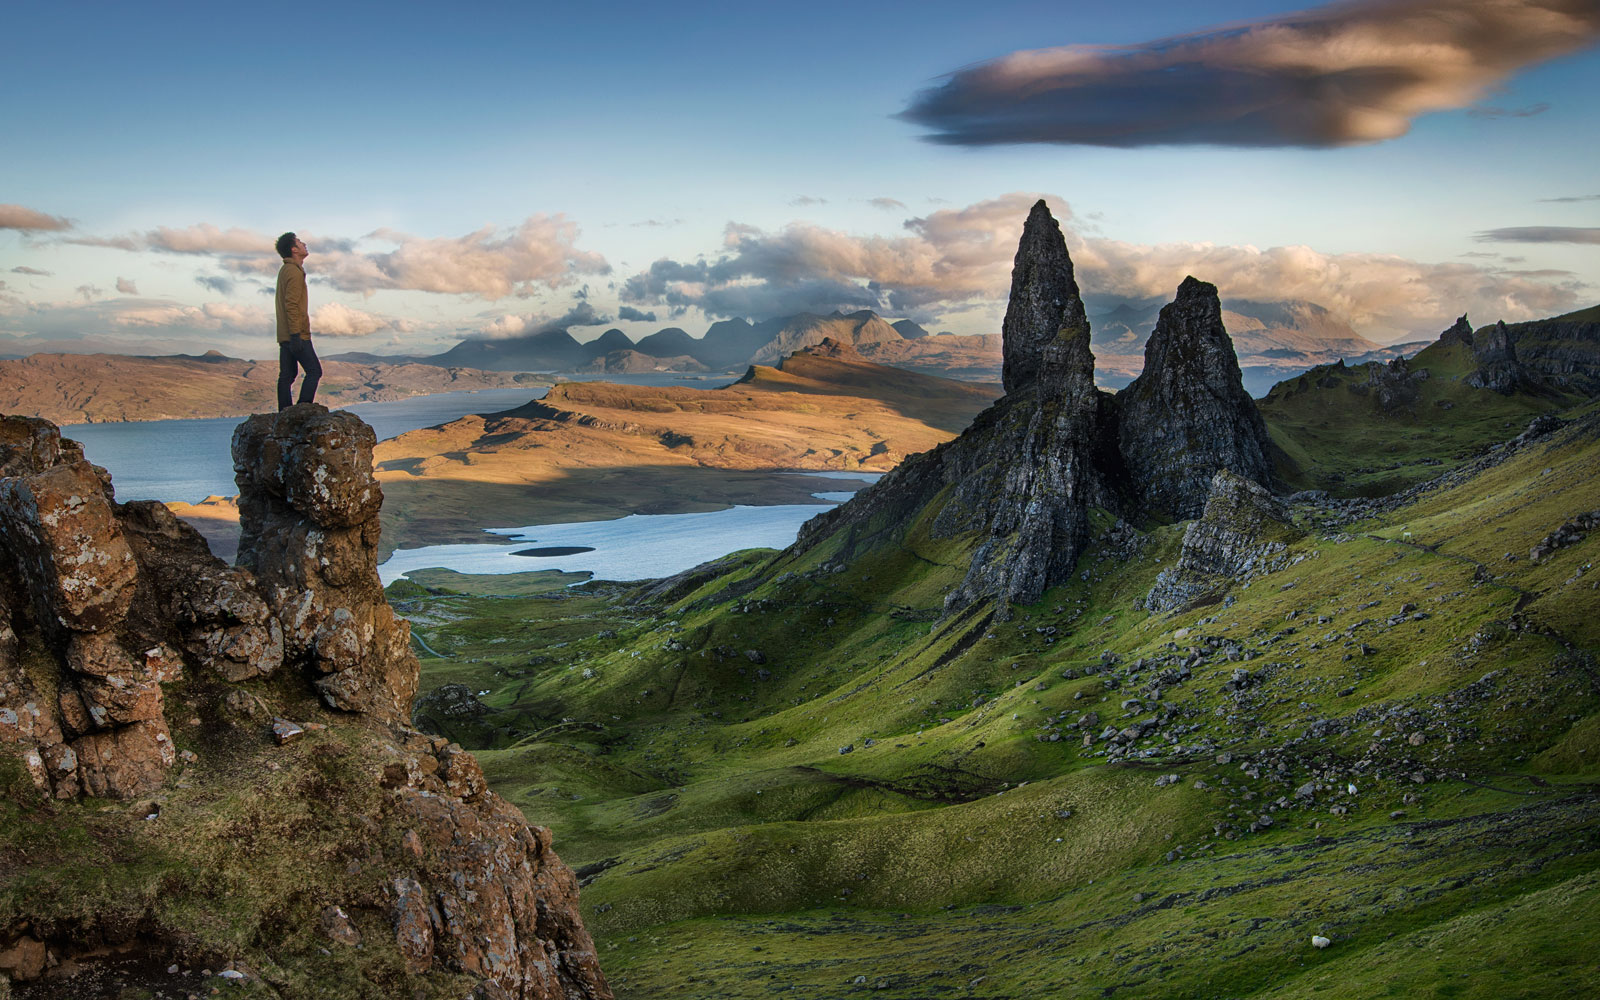 Scotland's Isle of Skye is one of the stops you'll visit along the new Hebridean Whisky Trail.